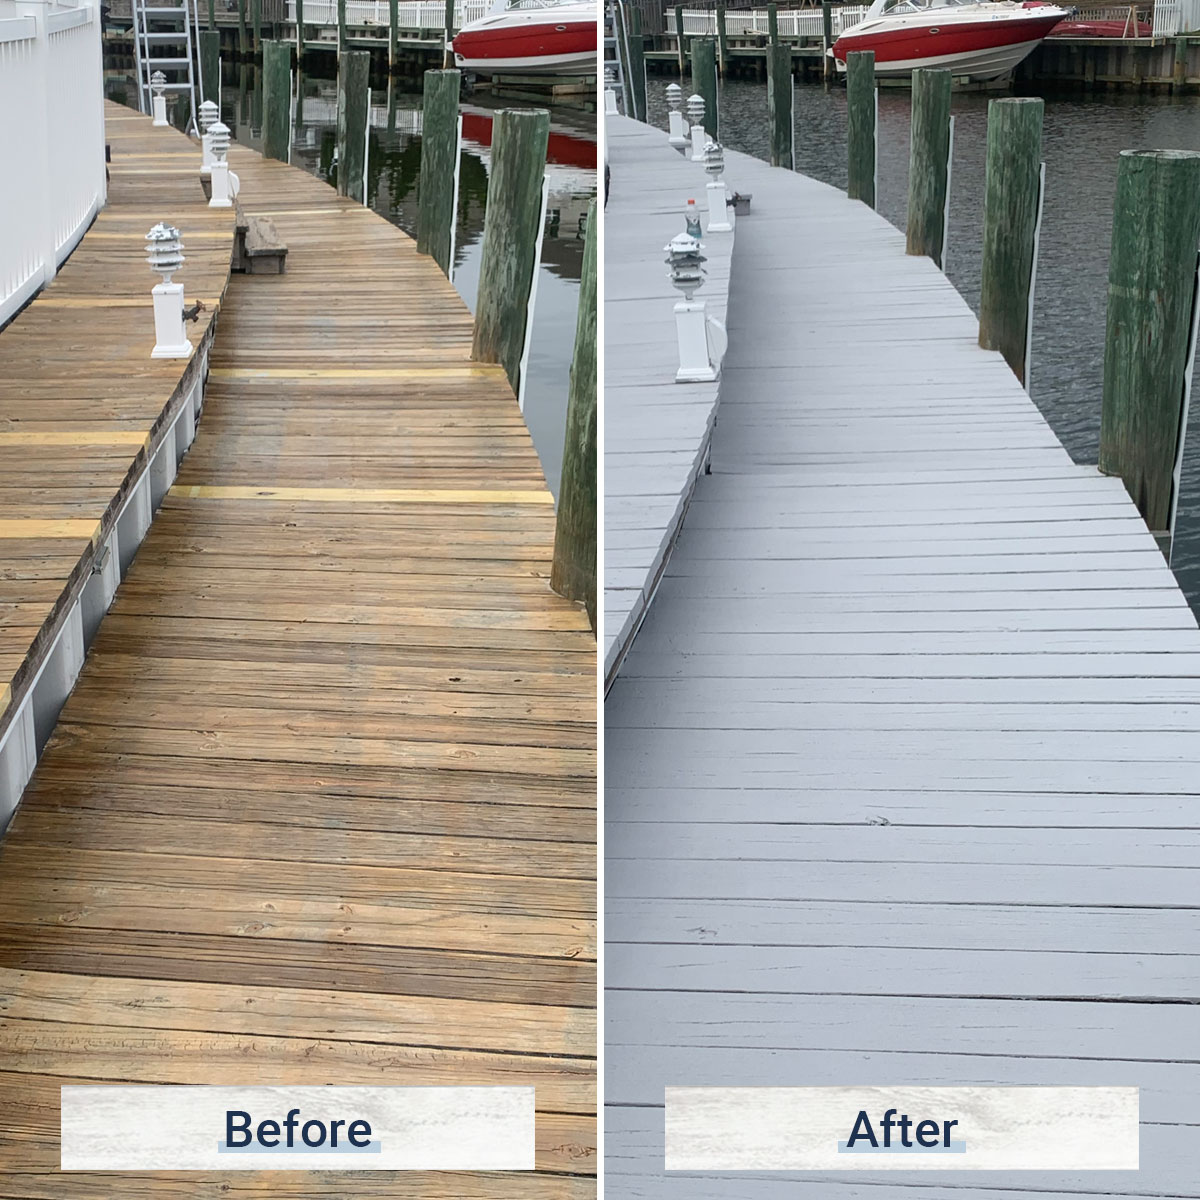 dock 6 before and after